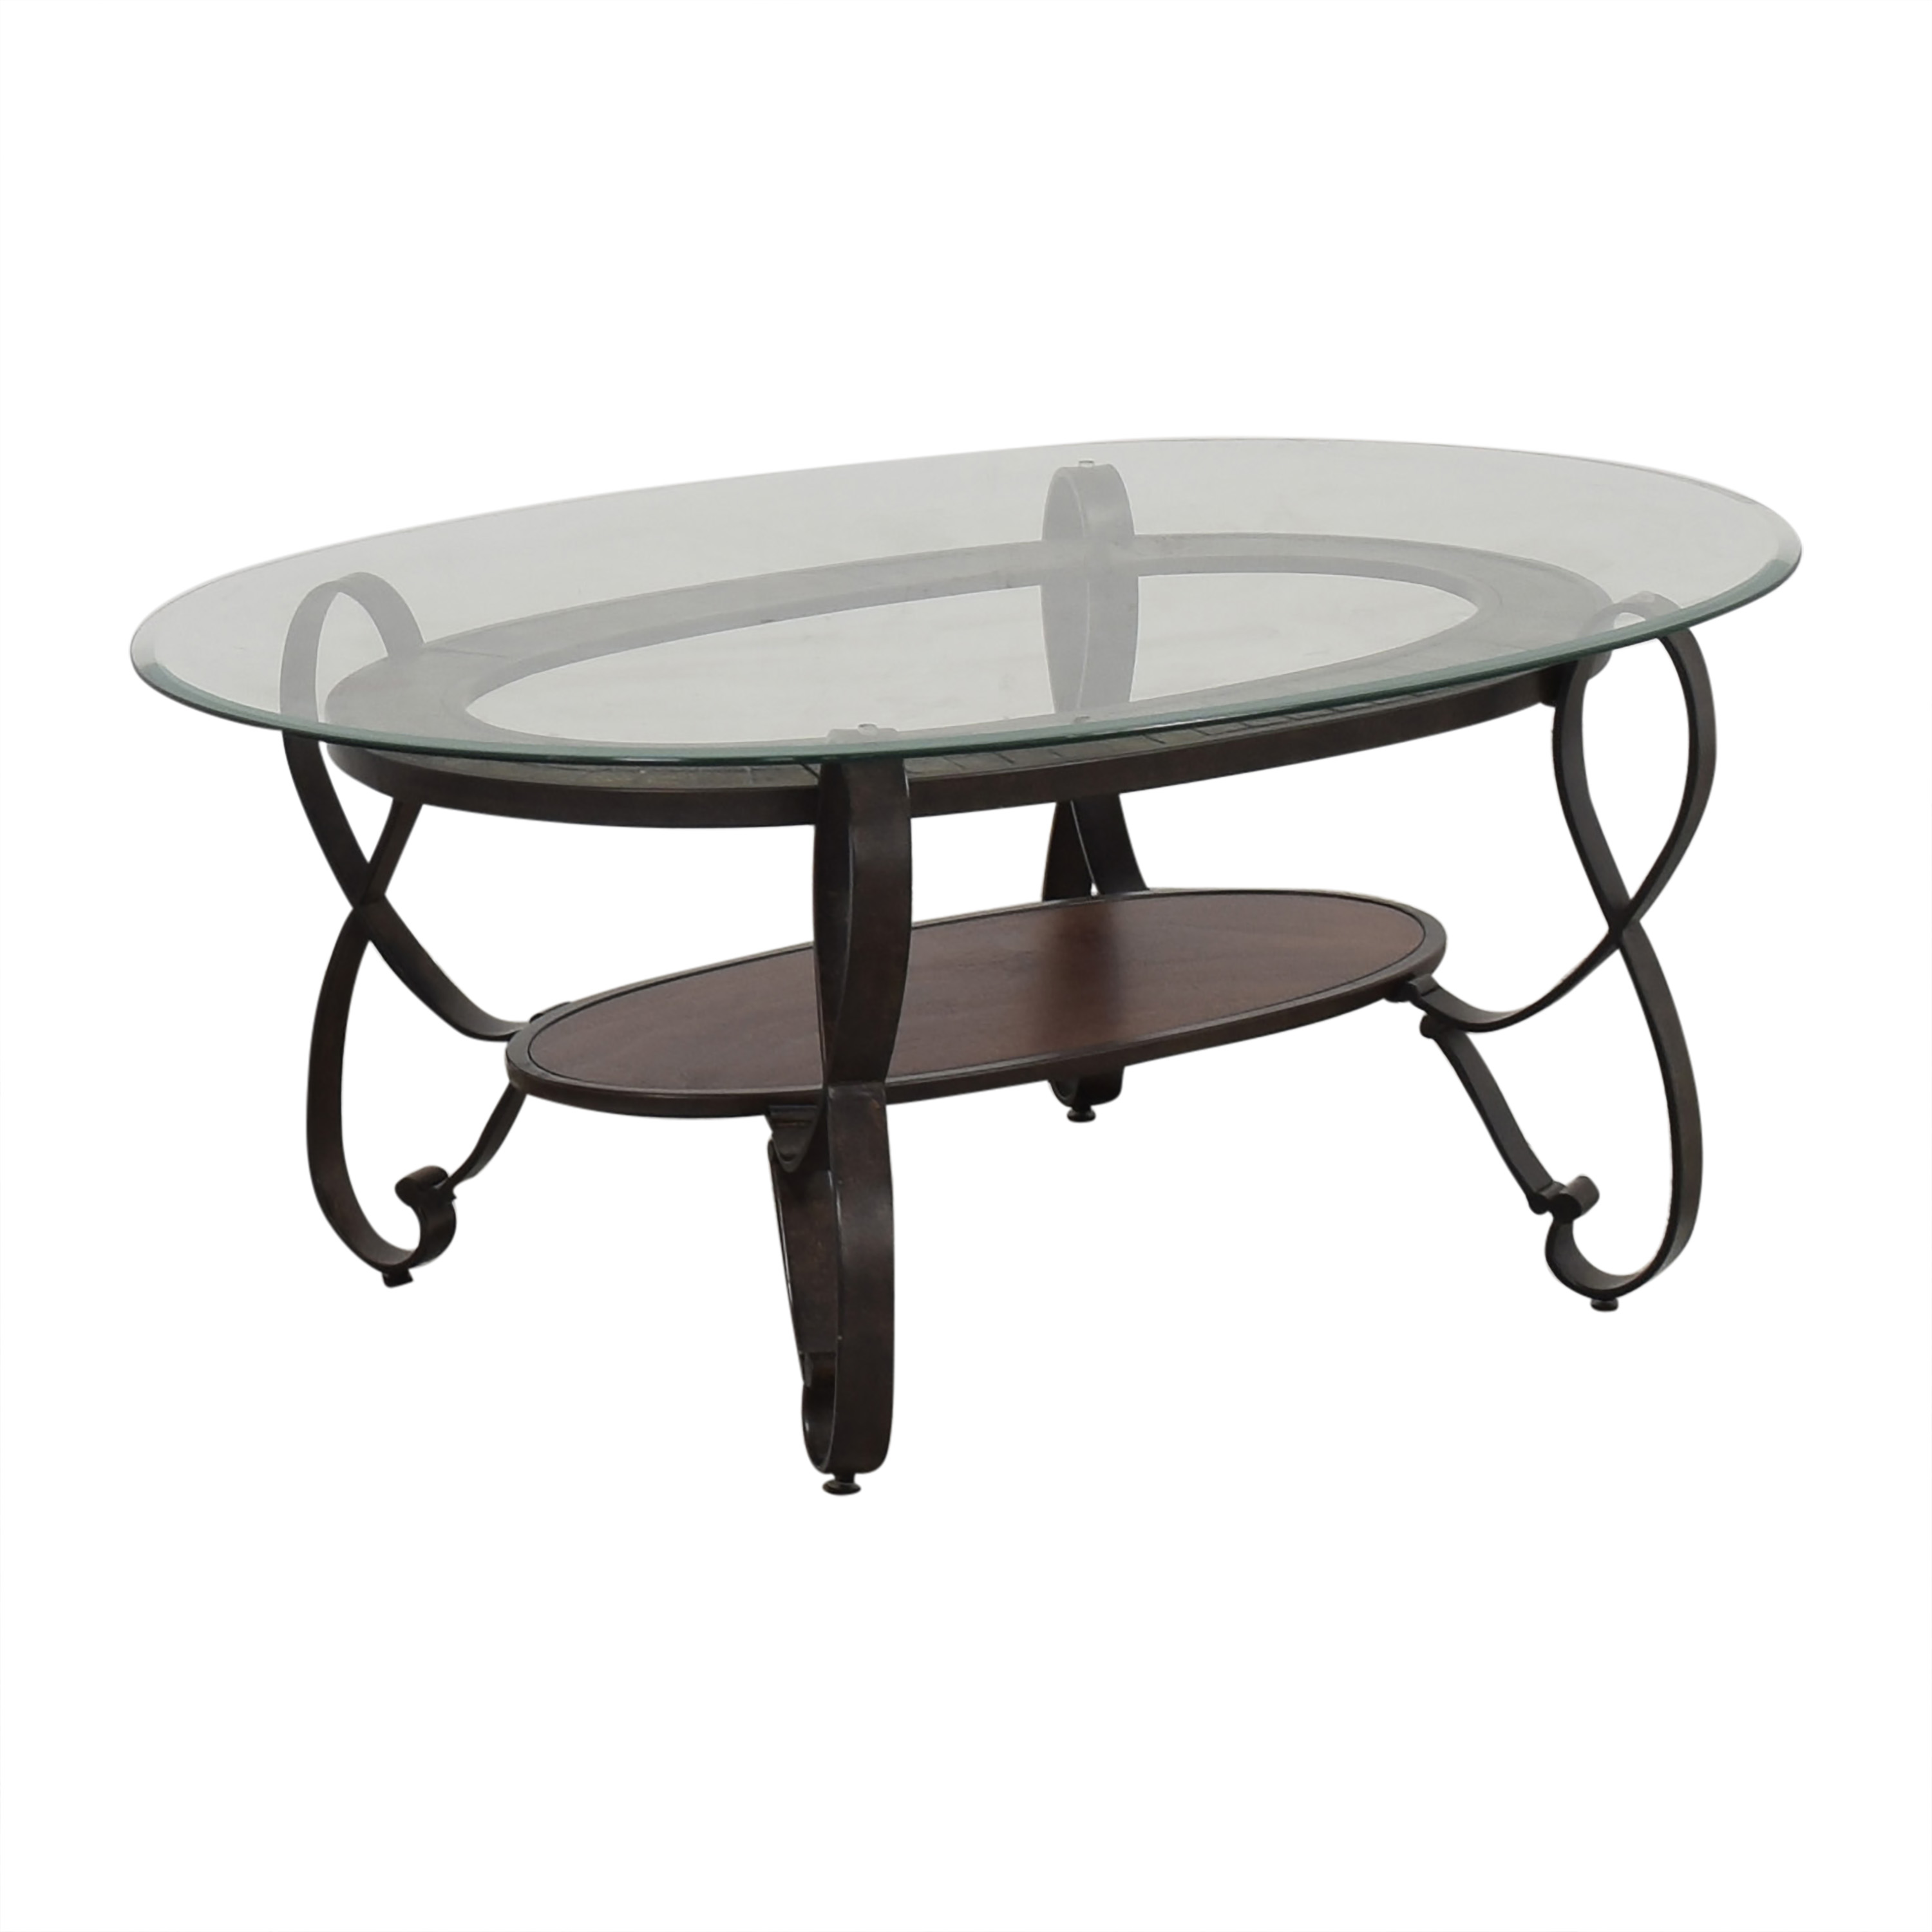 Raymour & Flanigan Oval Coffee Table / Tables